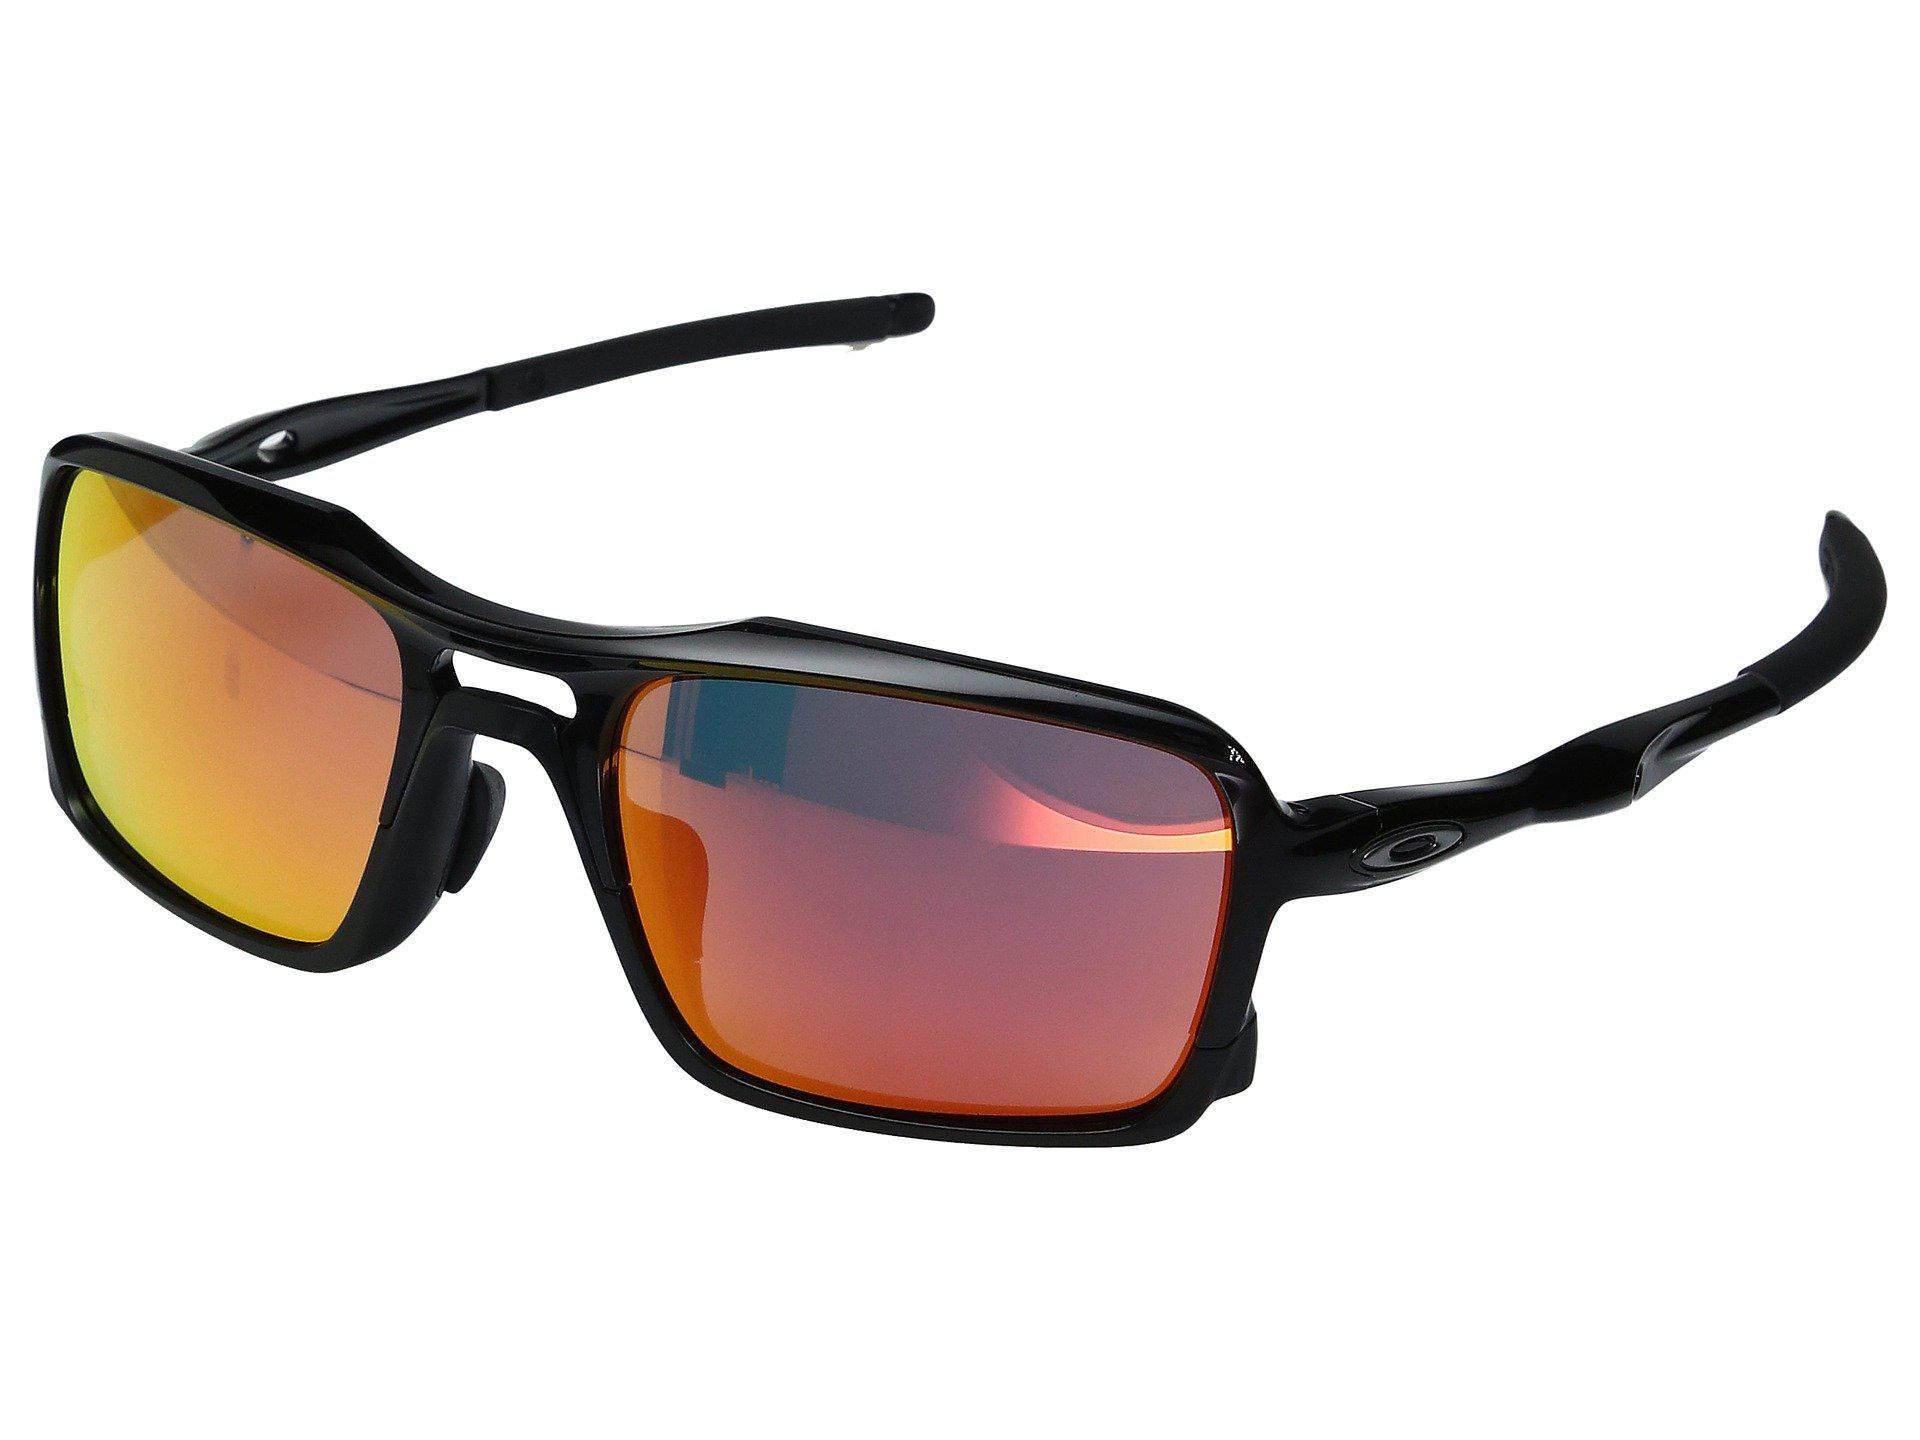 f05df0331778 Gallery. Previously sold at: 6PM · Men's Polarized ...